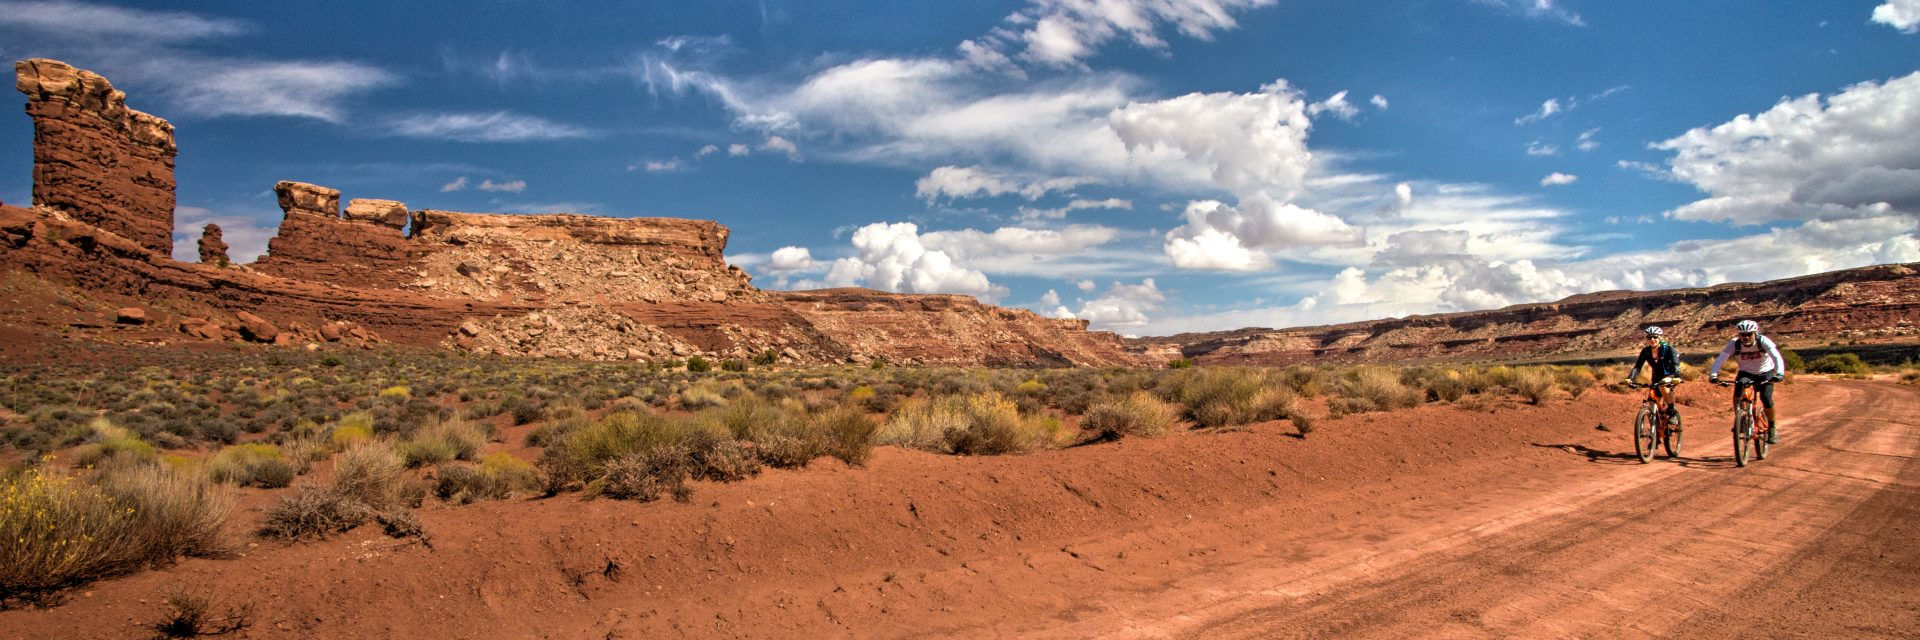 The final day of The Maze tours in Canyonlands National Park is a long ride but fast and very scenic